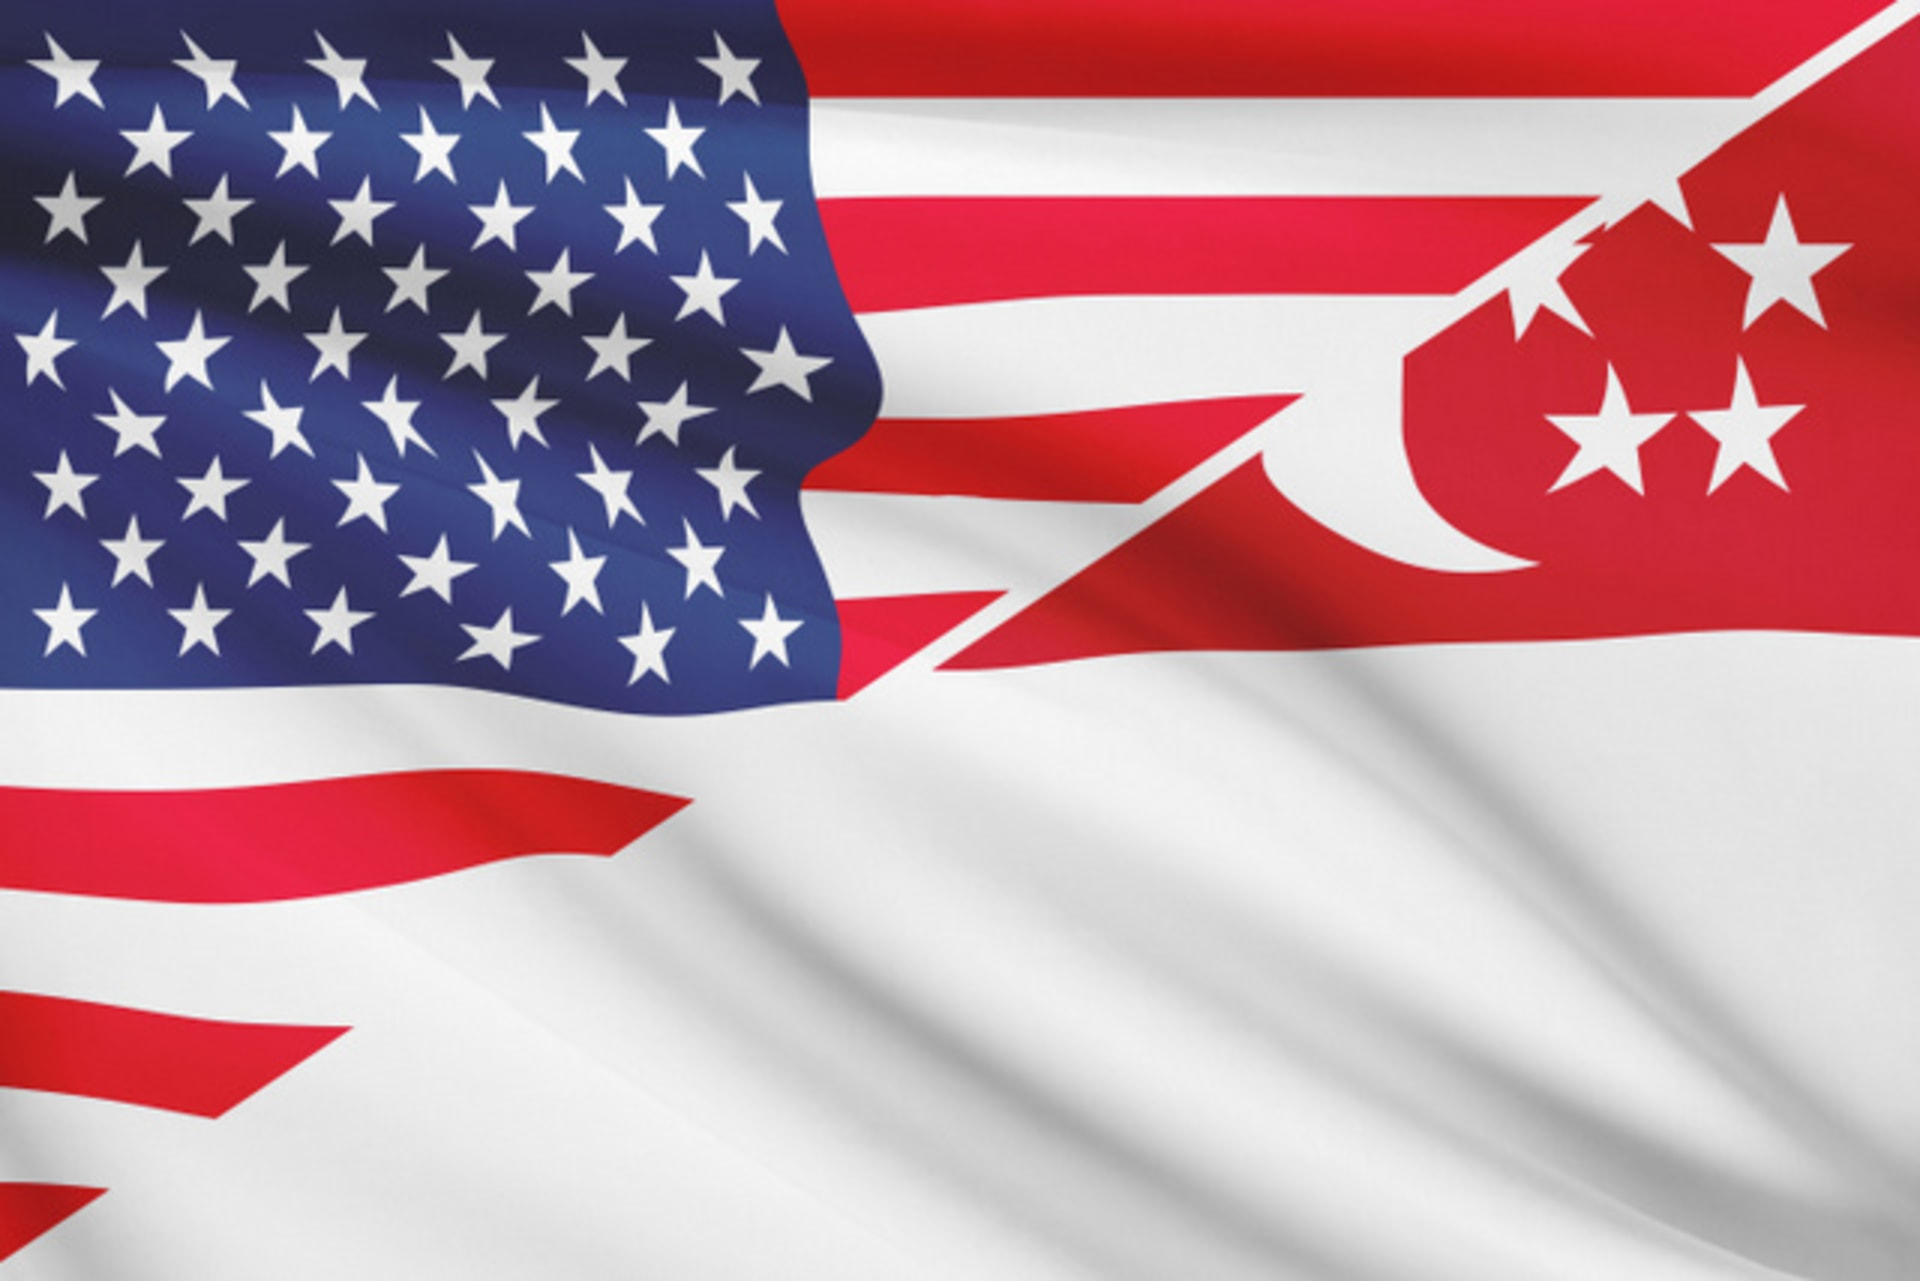 Ease of Doing Business: Singapore vs. USA